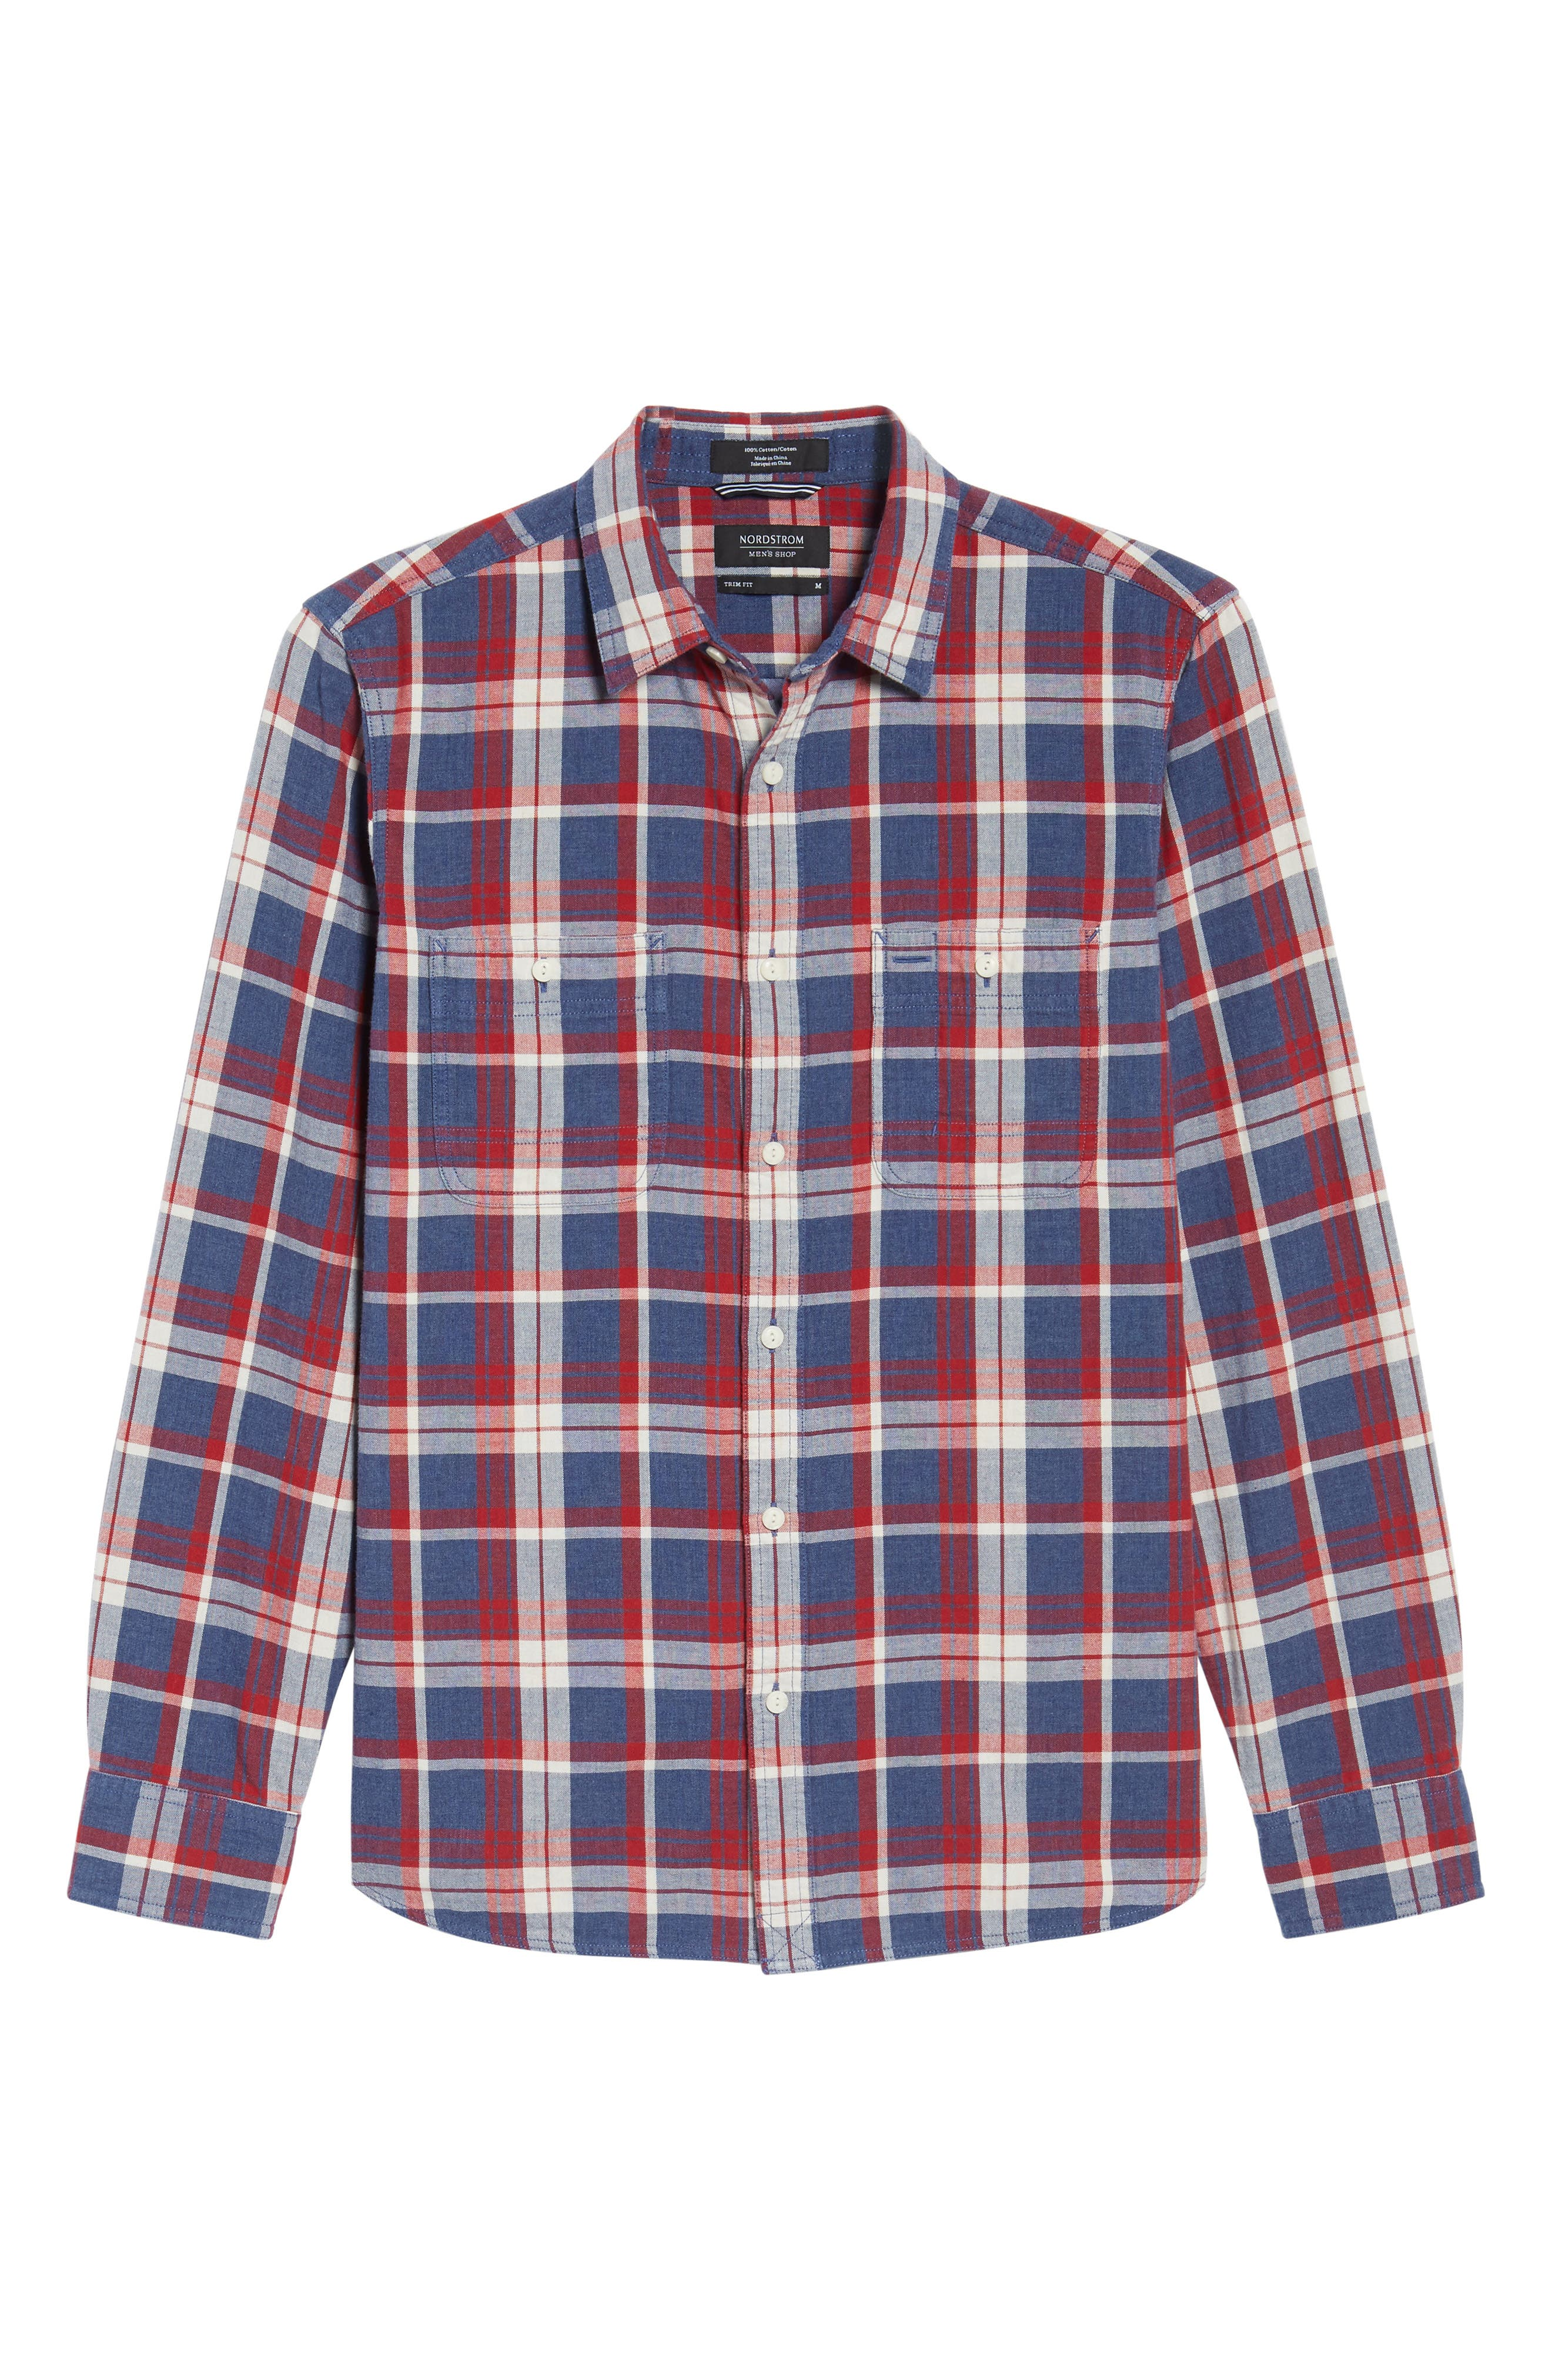 Trim Fit Workwear Duofold Plaid Sport Shirt,                             Alternate thumbnail 6, color,